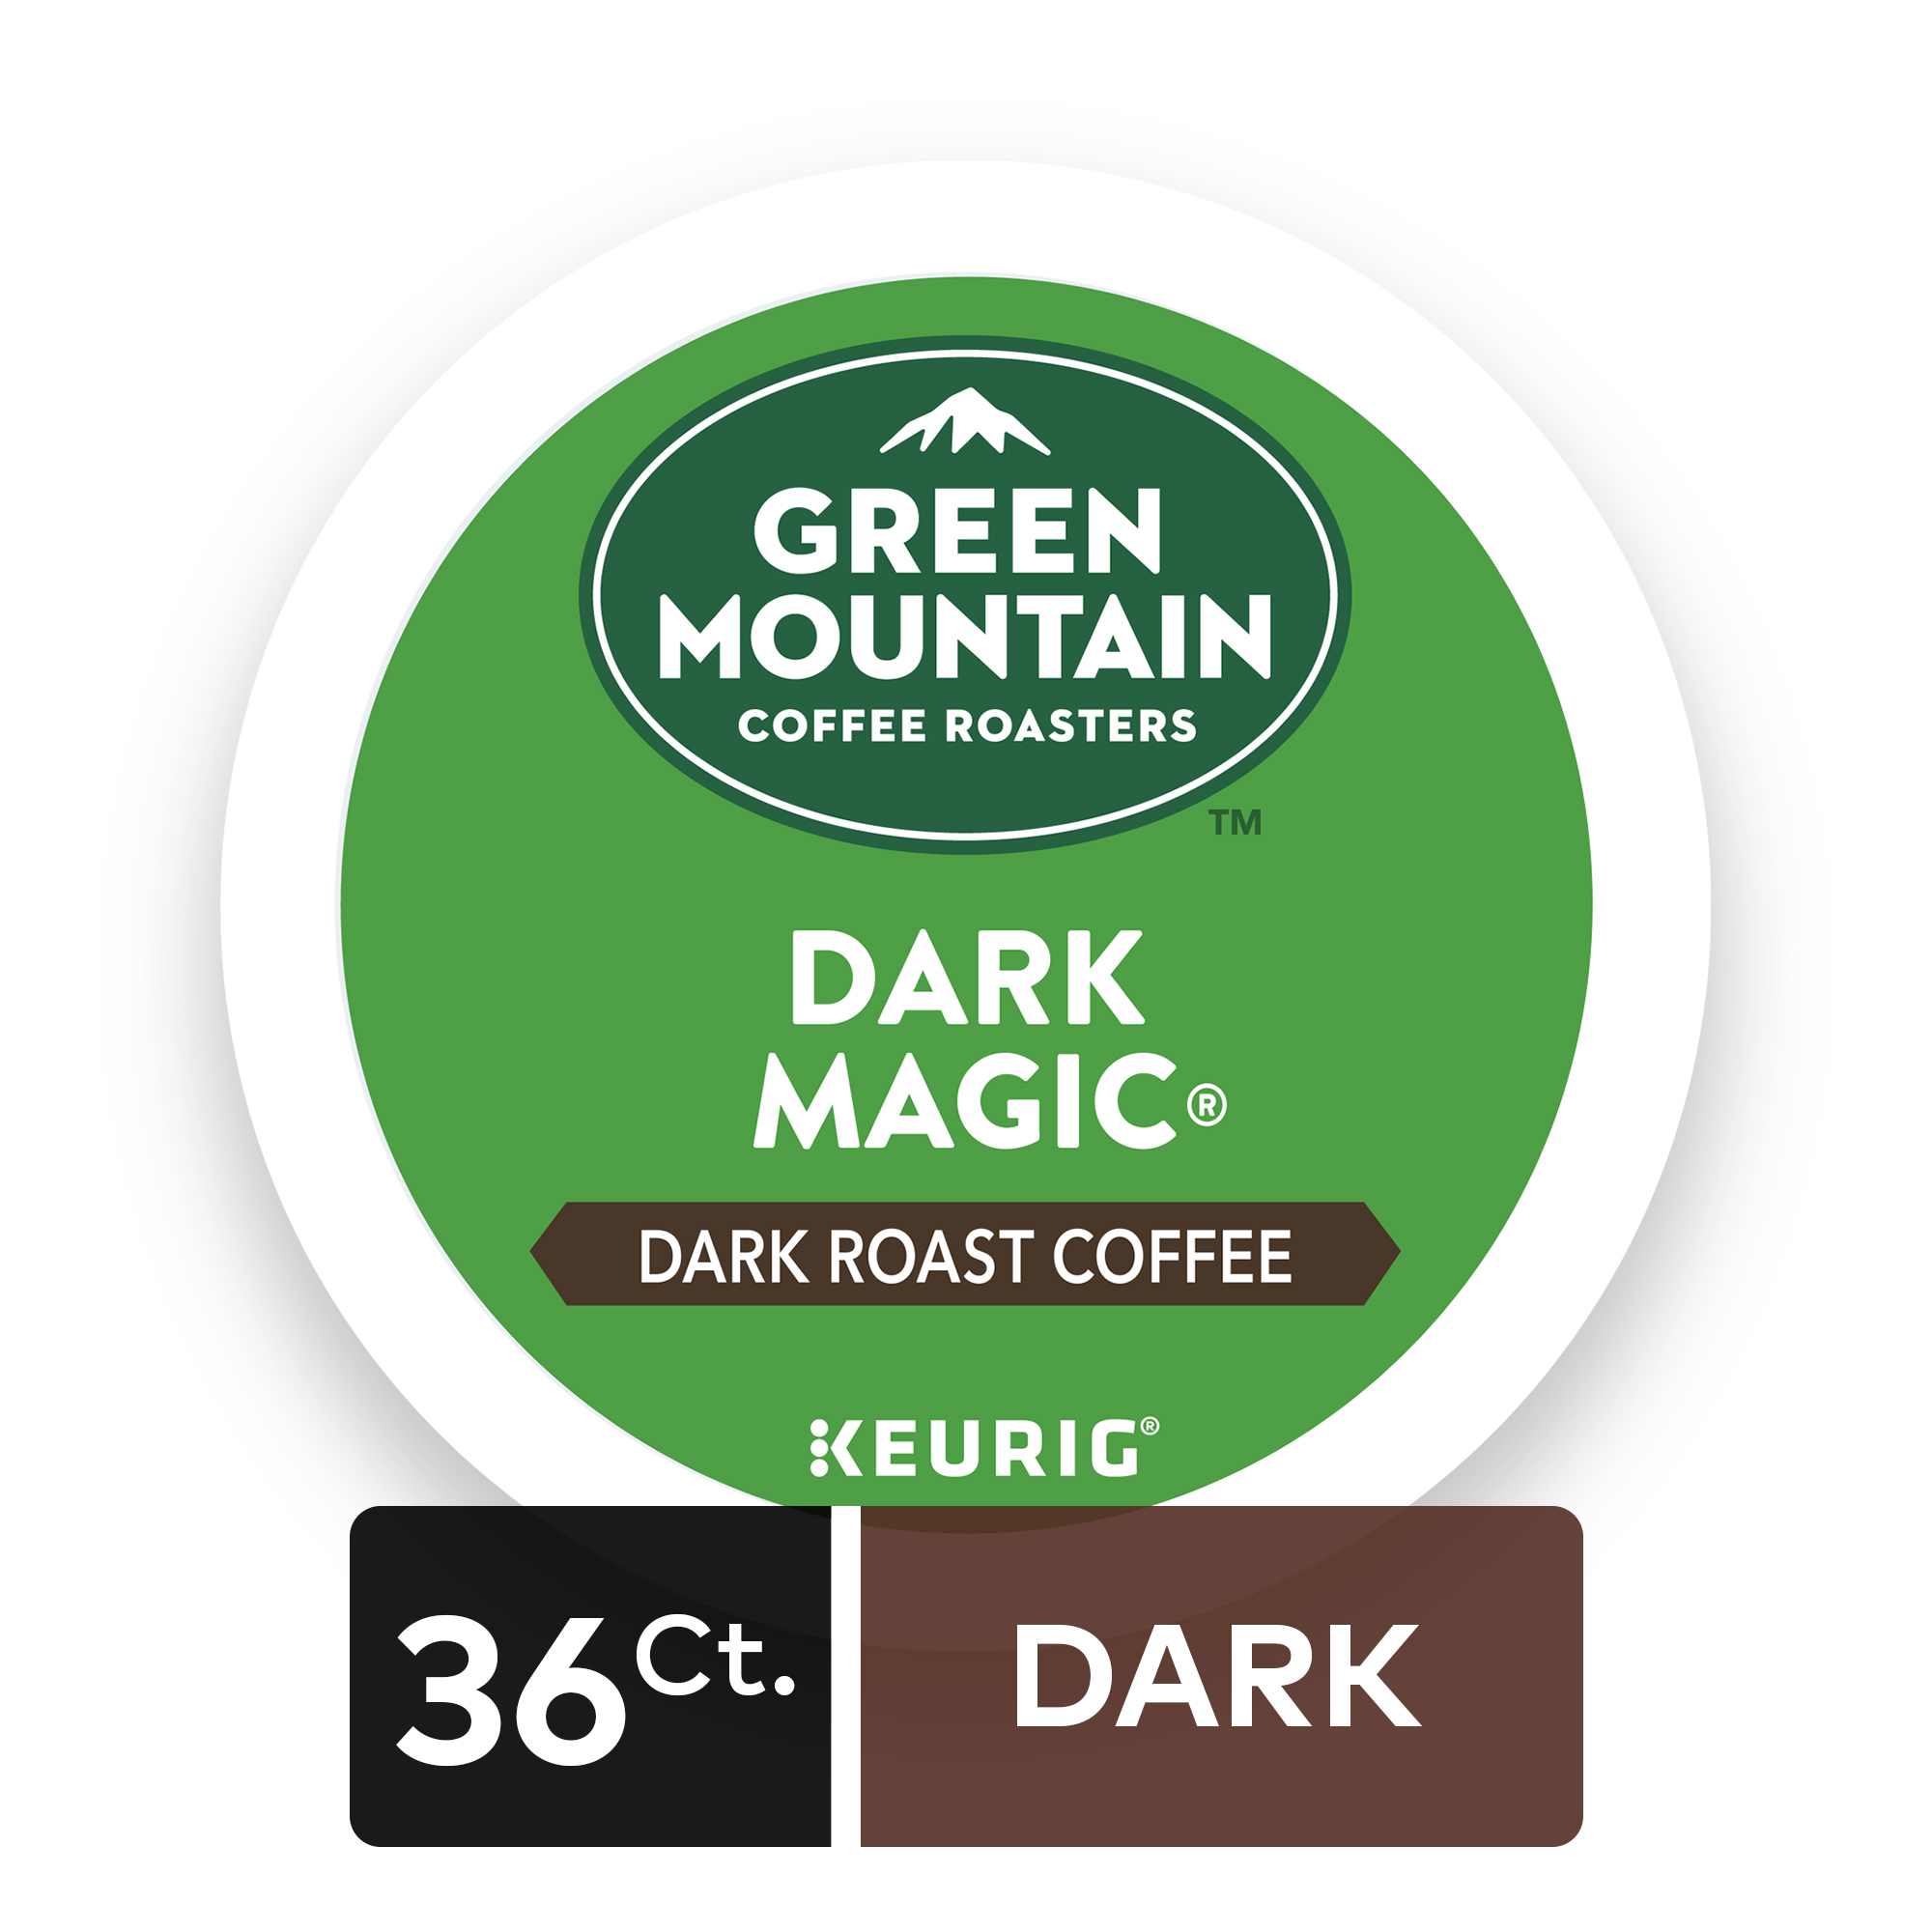 green mountain coffee Applies to new email subscribers only upon confirmation of eligibility, new subscribers will receive a coupon for 15% off green mountain coffee roasters® k-cup®, k-carafe®, k-mug®, vue® pods, and bagged coffee, purchased on wwwkeurigcom.